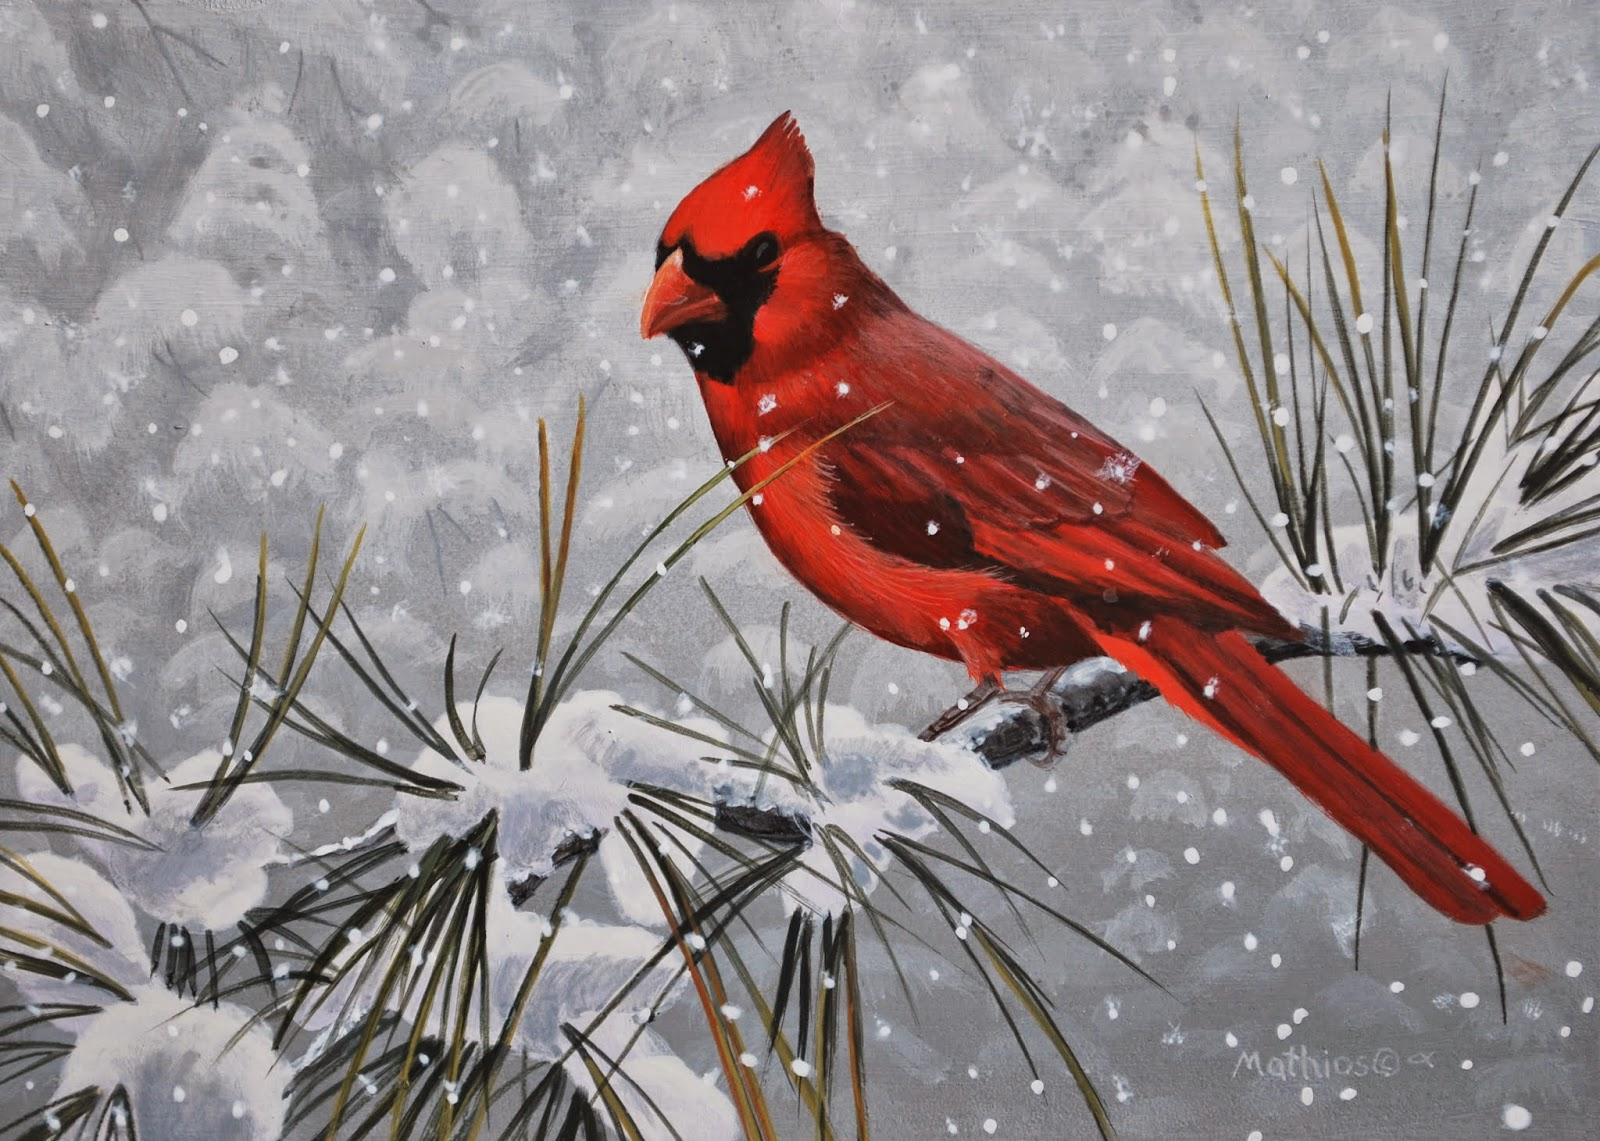 Daily paintings by peter mathios september 2013 - Pictures of cardinals in snow ...